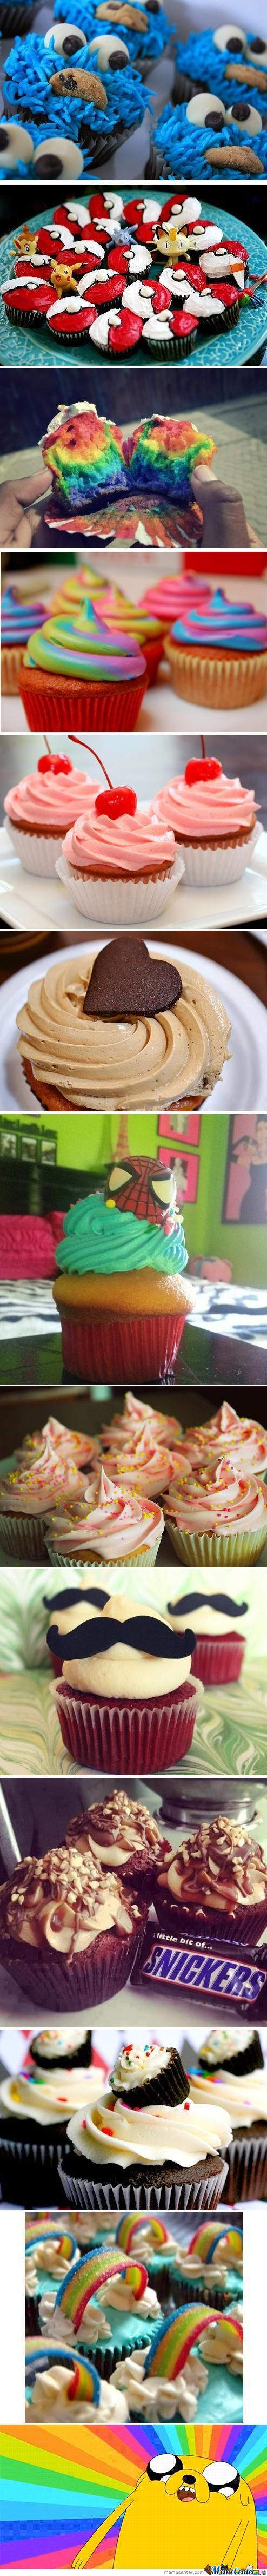 Awesome Cupcakes Are Awesome